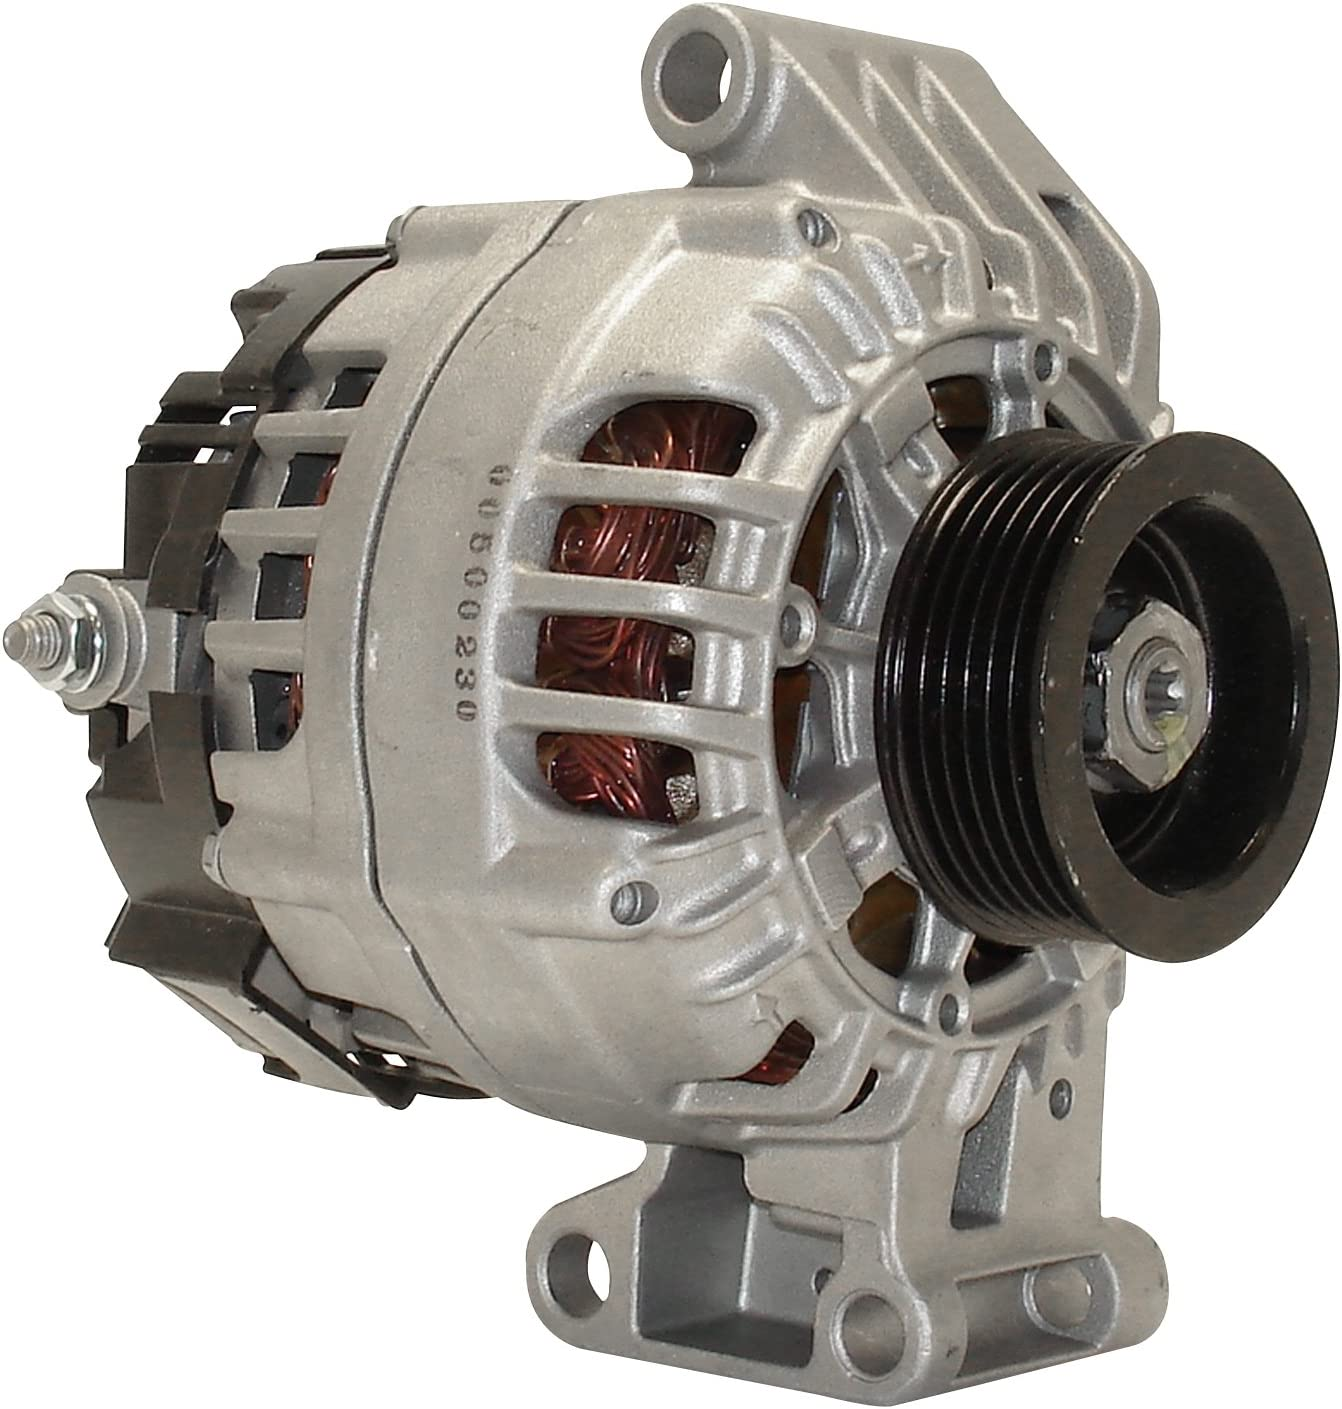 Super Special SALE held ACDelco Selling rankings Gold 334-2857 Remanufactured Alternator